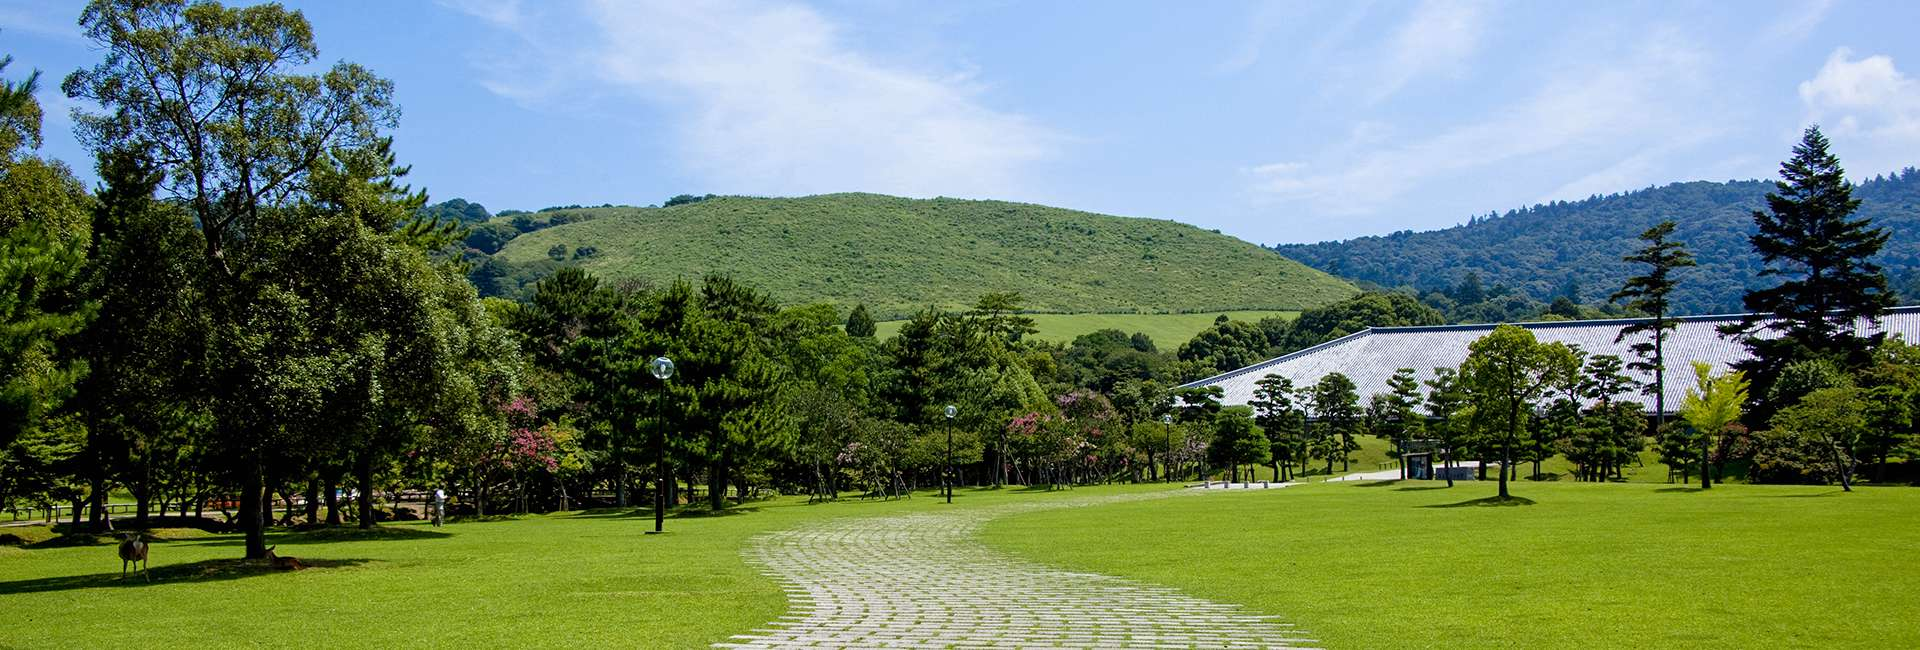 view on the park of Nara